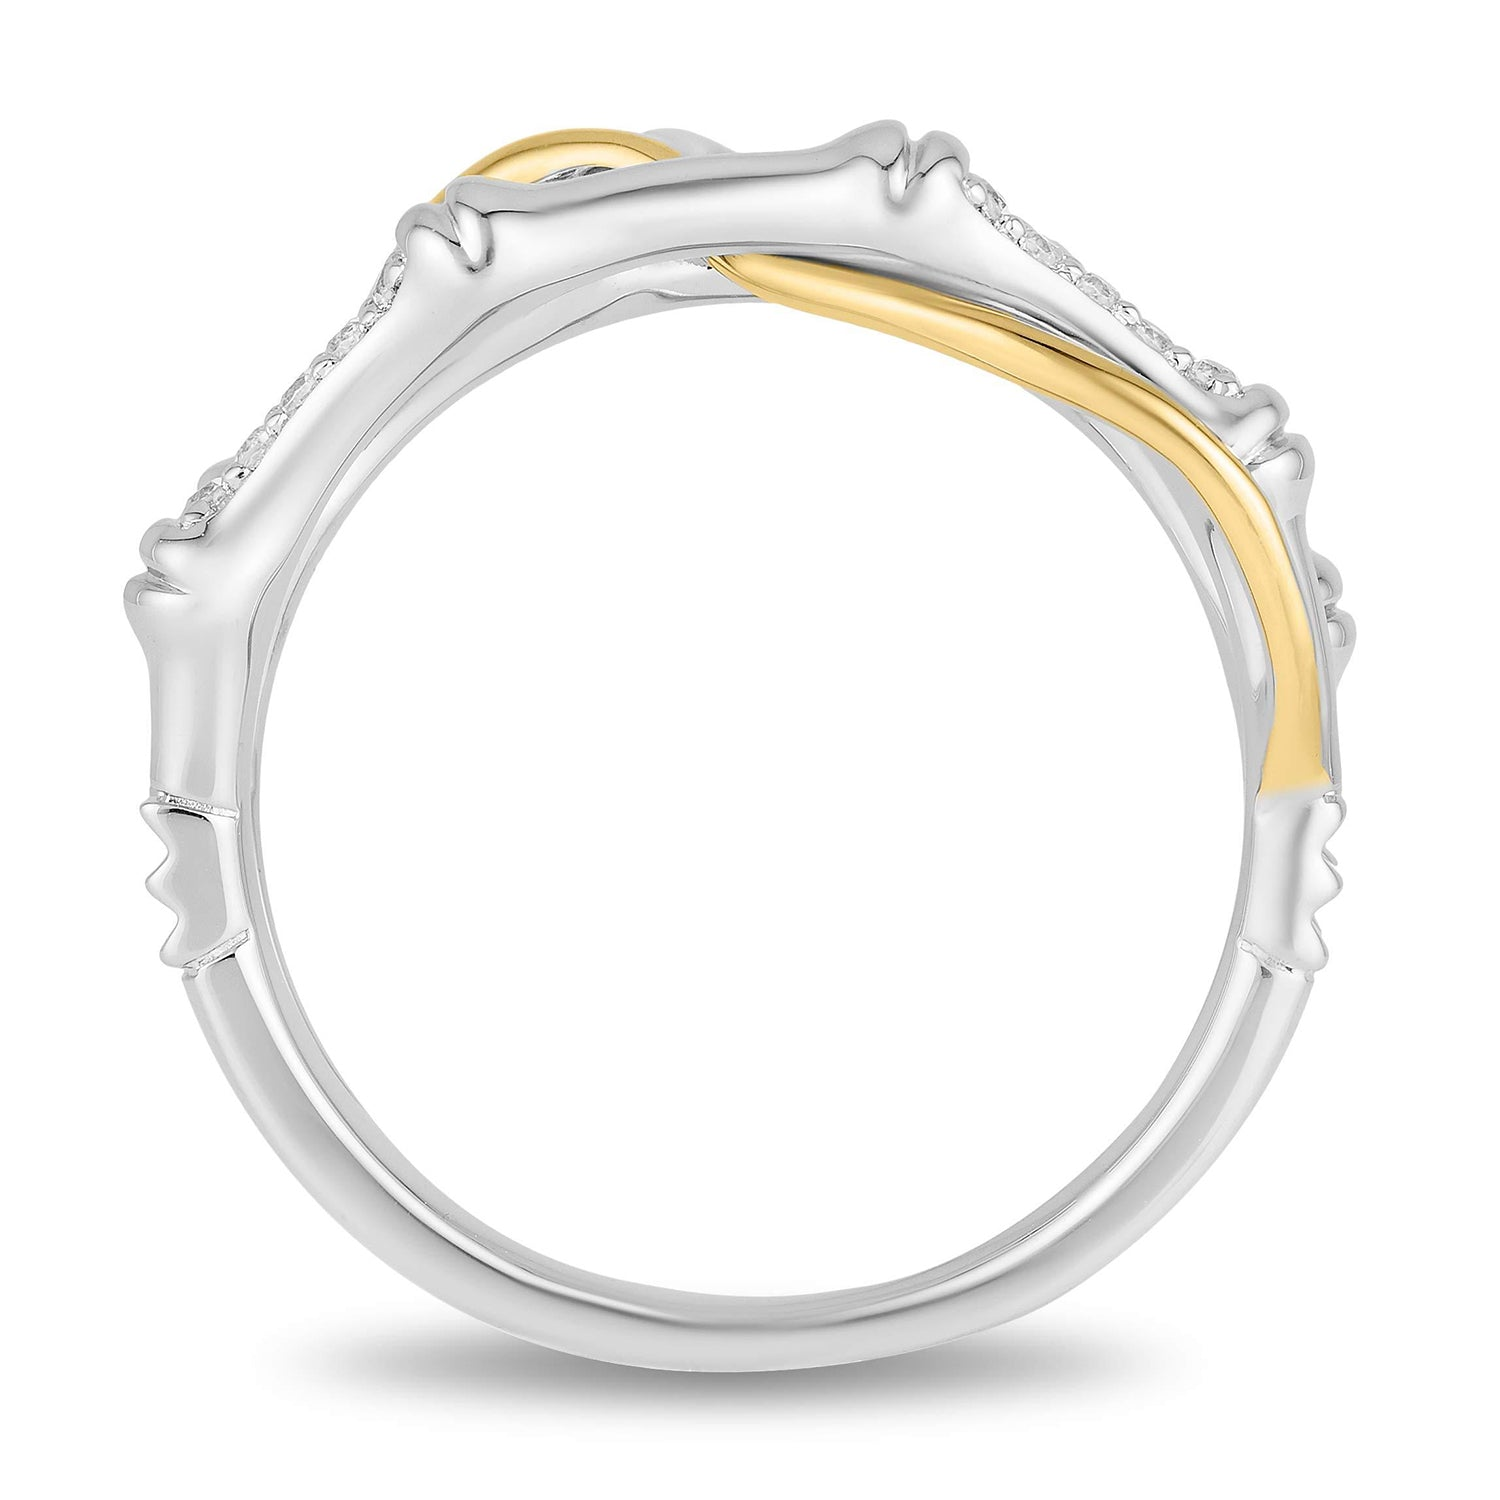 enchanted_disney-mulan_ring-10k_white_and_yellow_gold_1/10CTTW_3